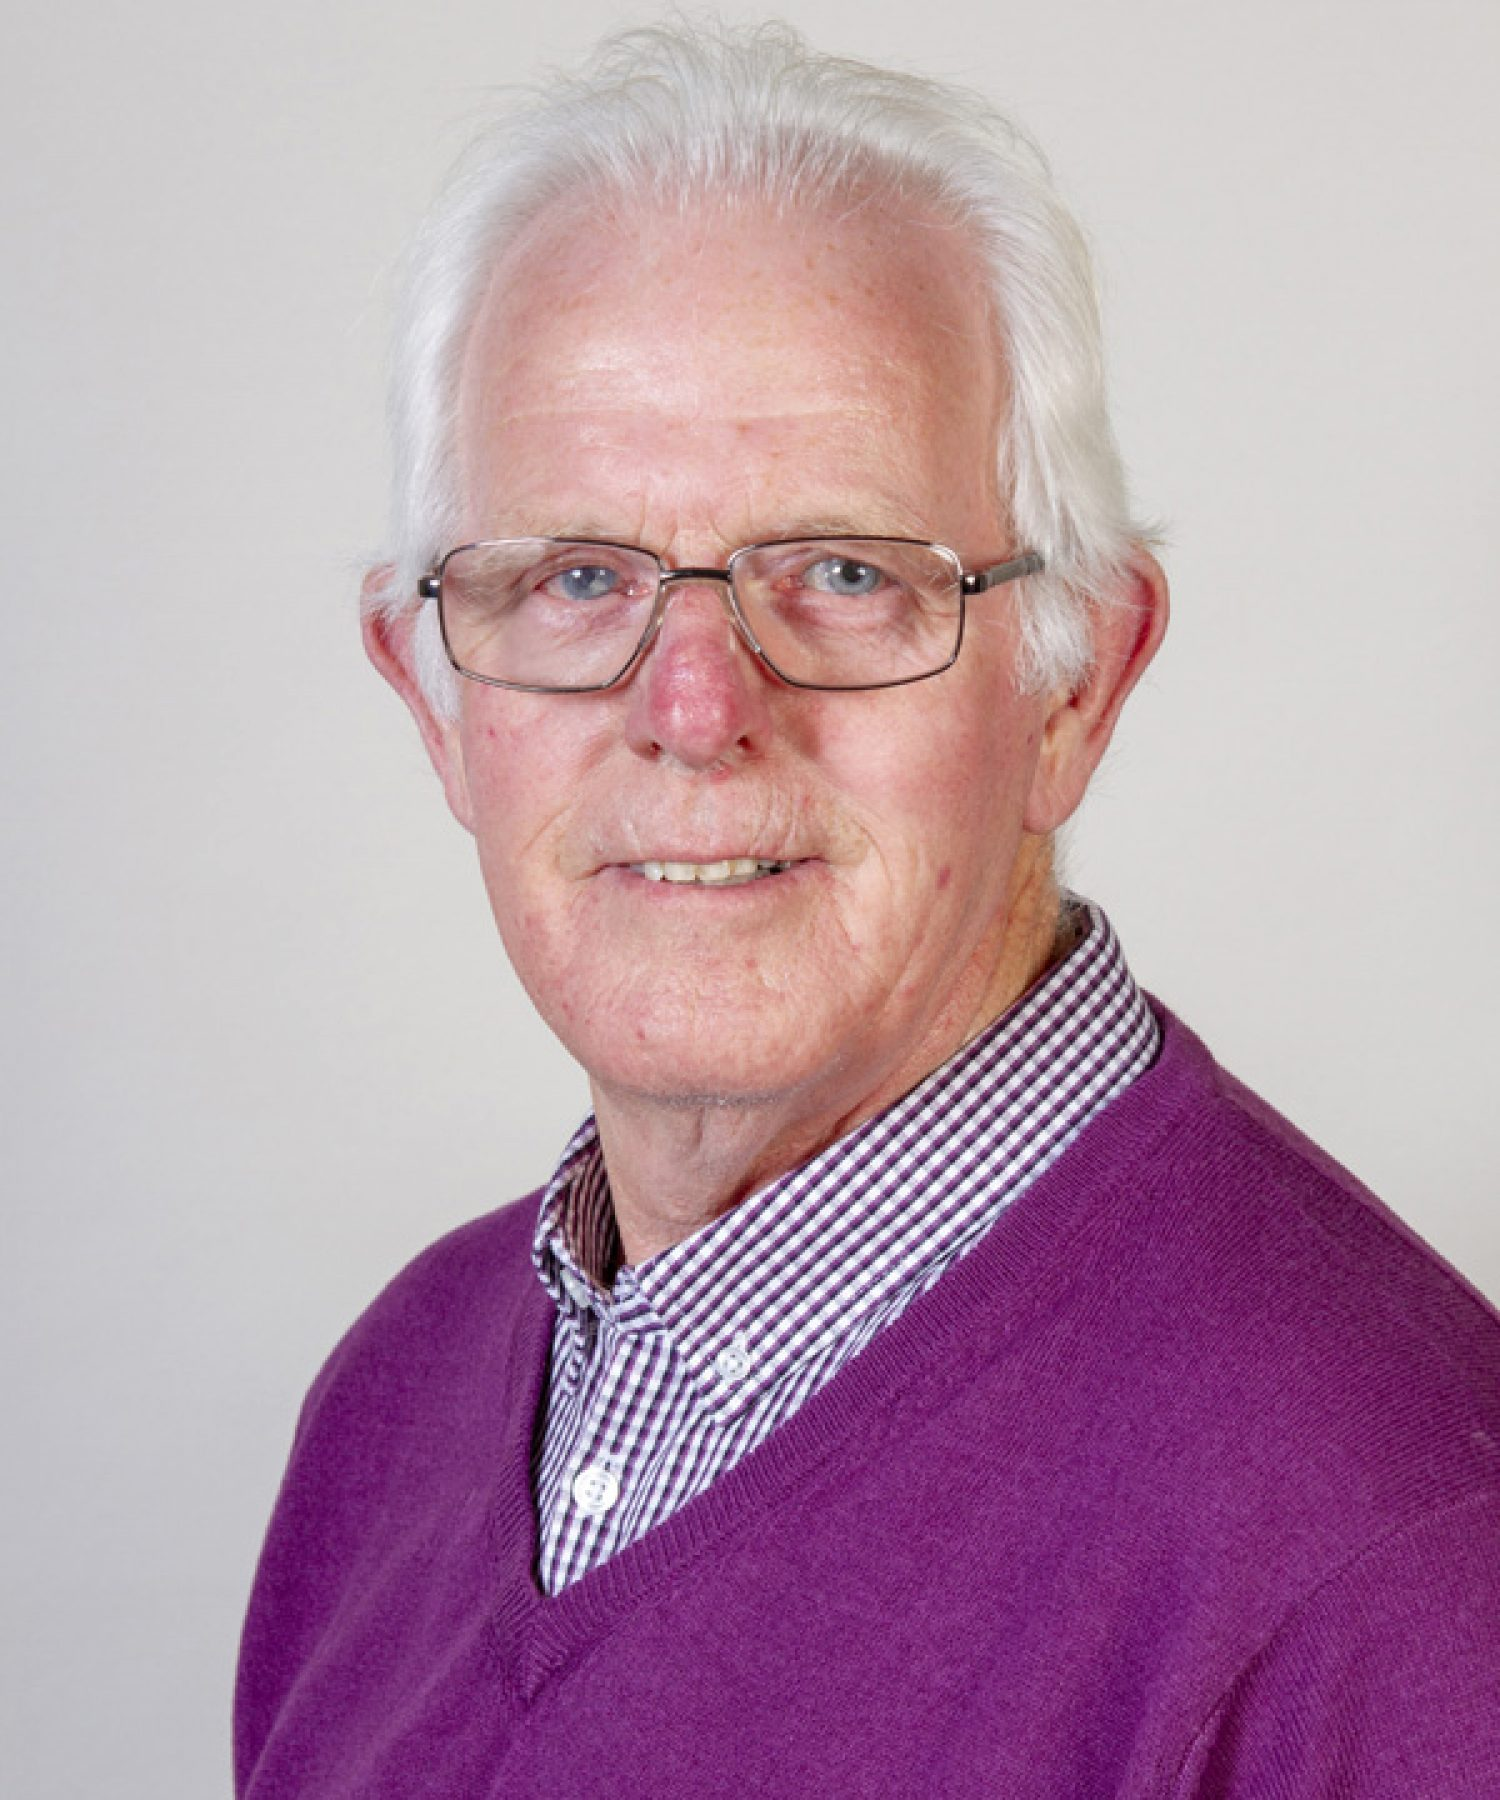 Image of Cllr Bryan Stubbs taken 2019